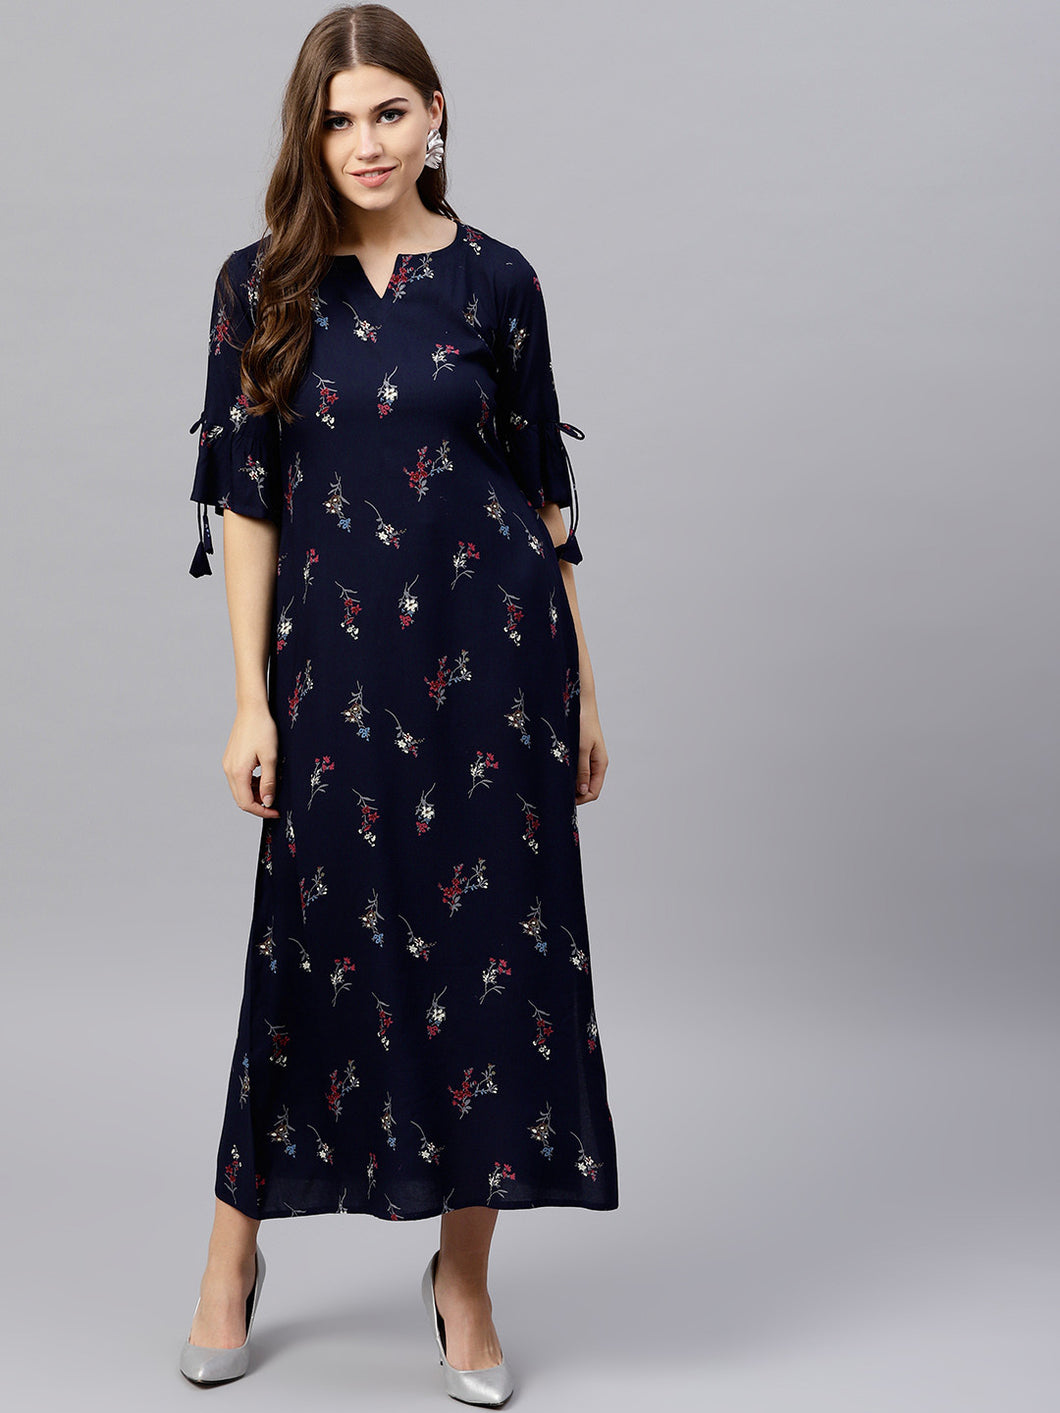 Queen ellie Women Navy Blue Printed Maxi Dress